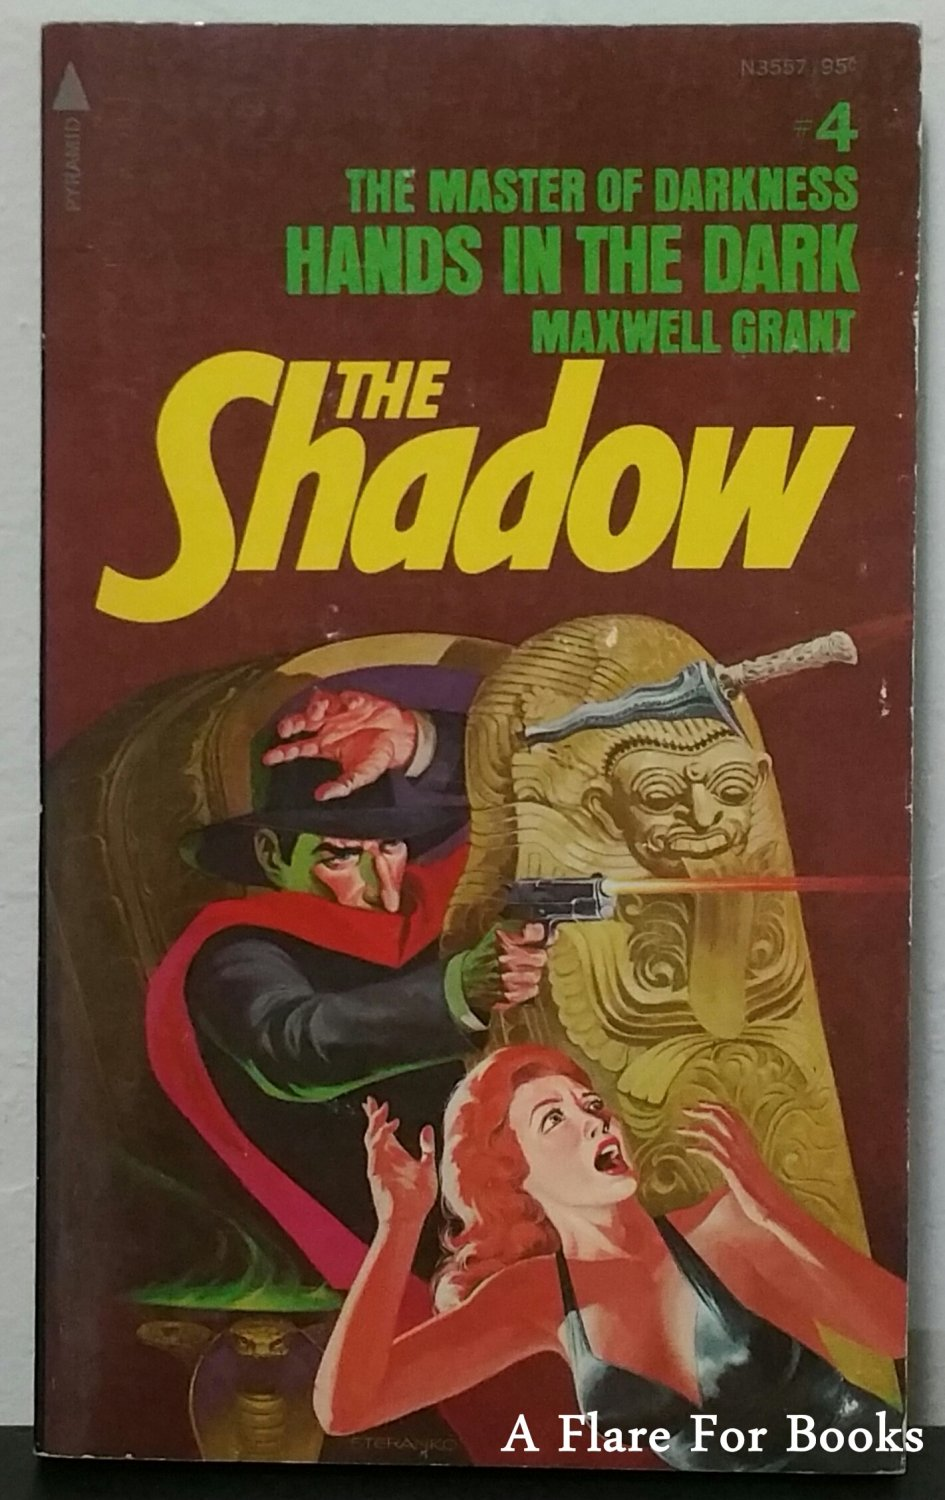 Hands in the Dark: The Shadow #4 by Maxwell Grant